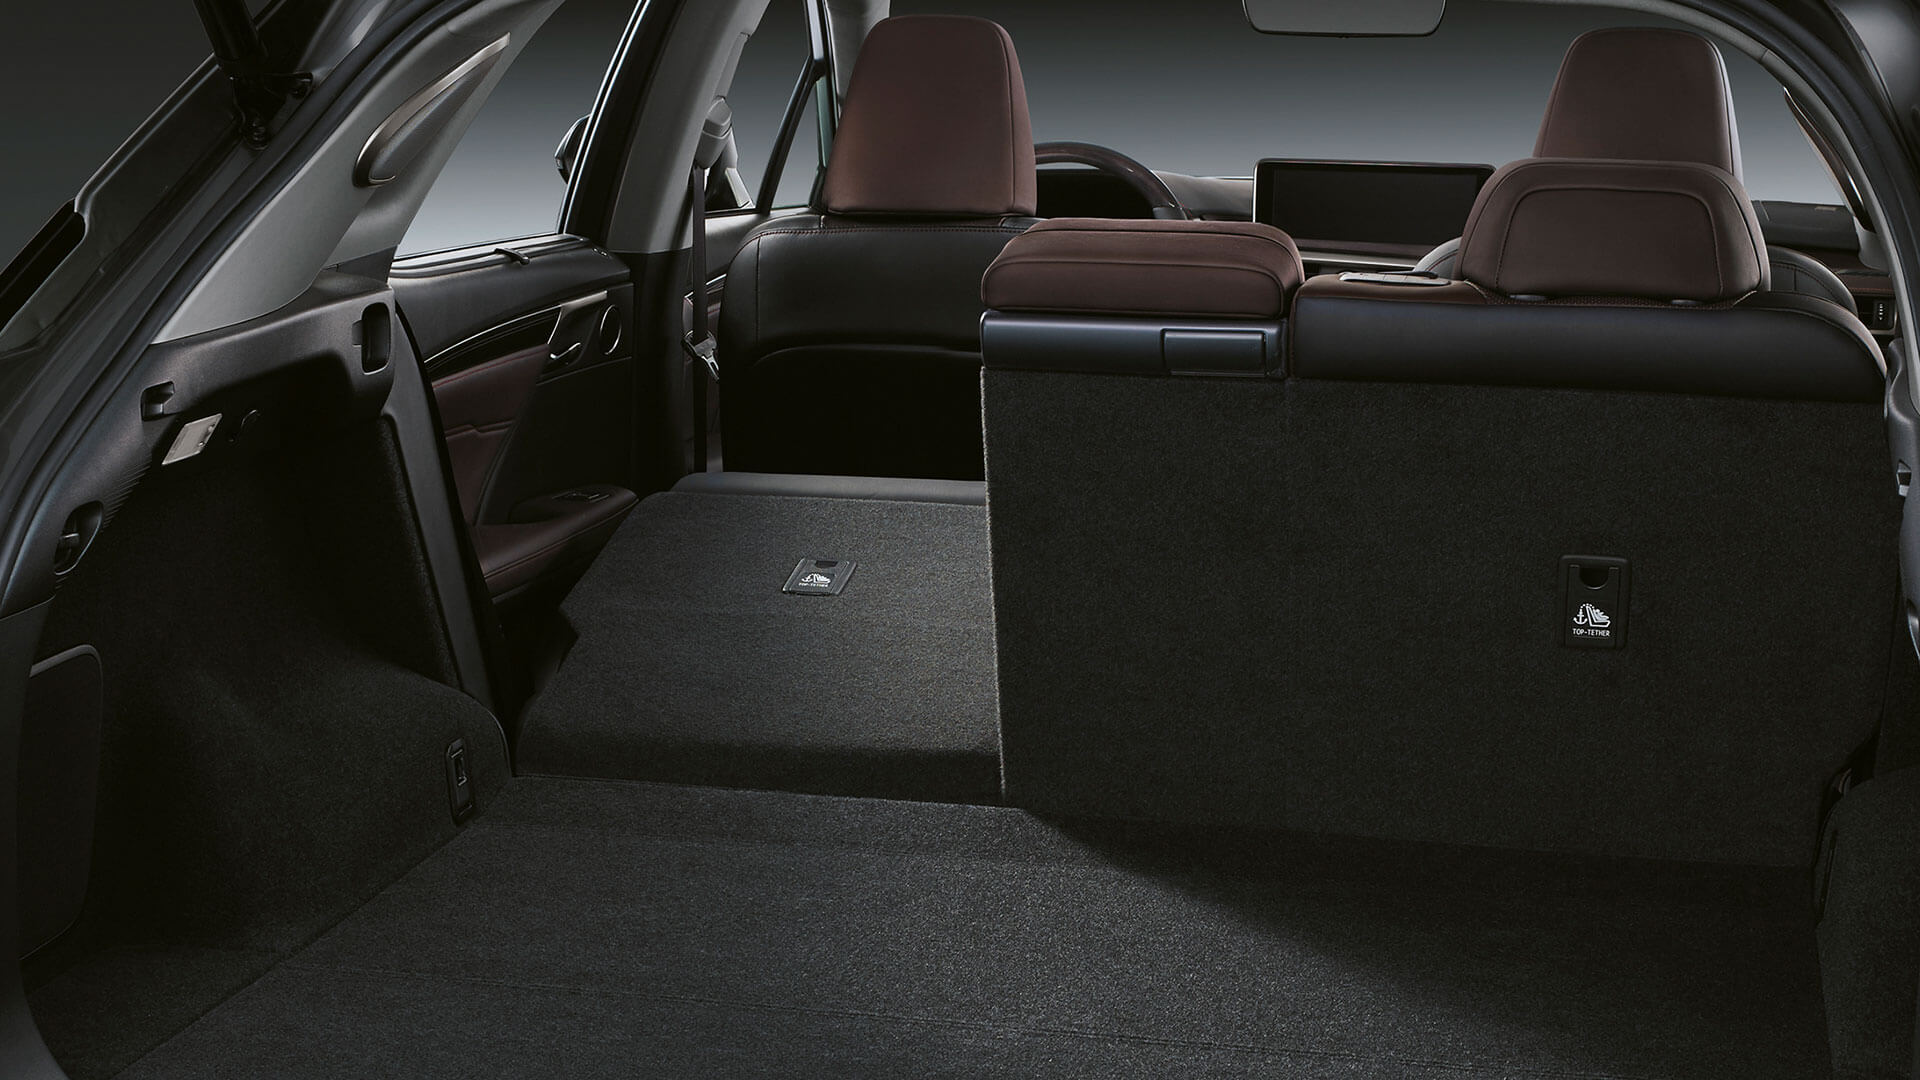 2019 lexus rx hotspot flexible space